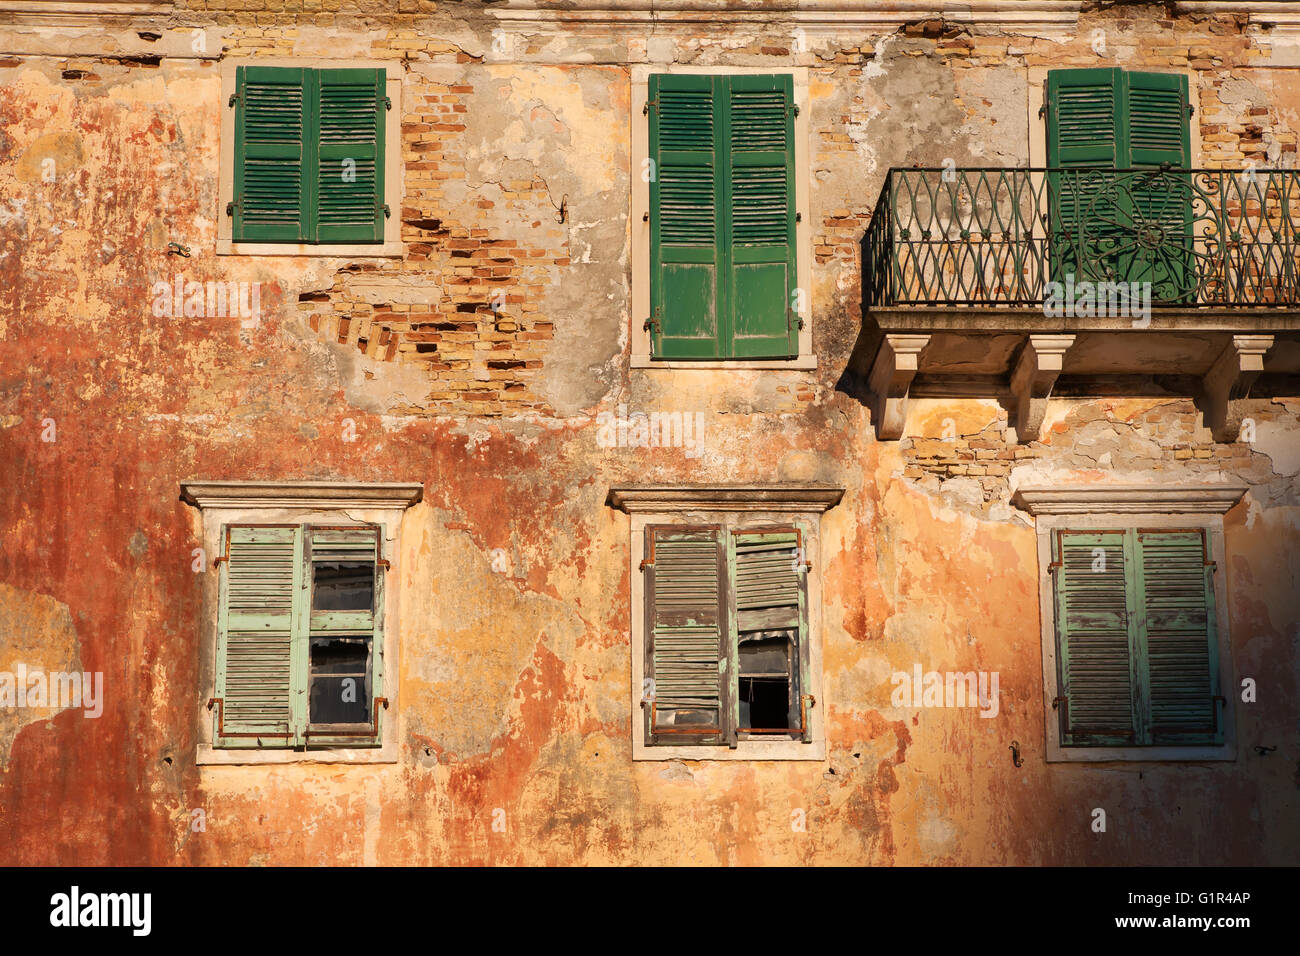 The decaying but still imposing remains of the Britsh Governor's Residence, Gaios, Paxos, Ionian Islands, Greece - Stock Image